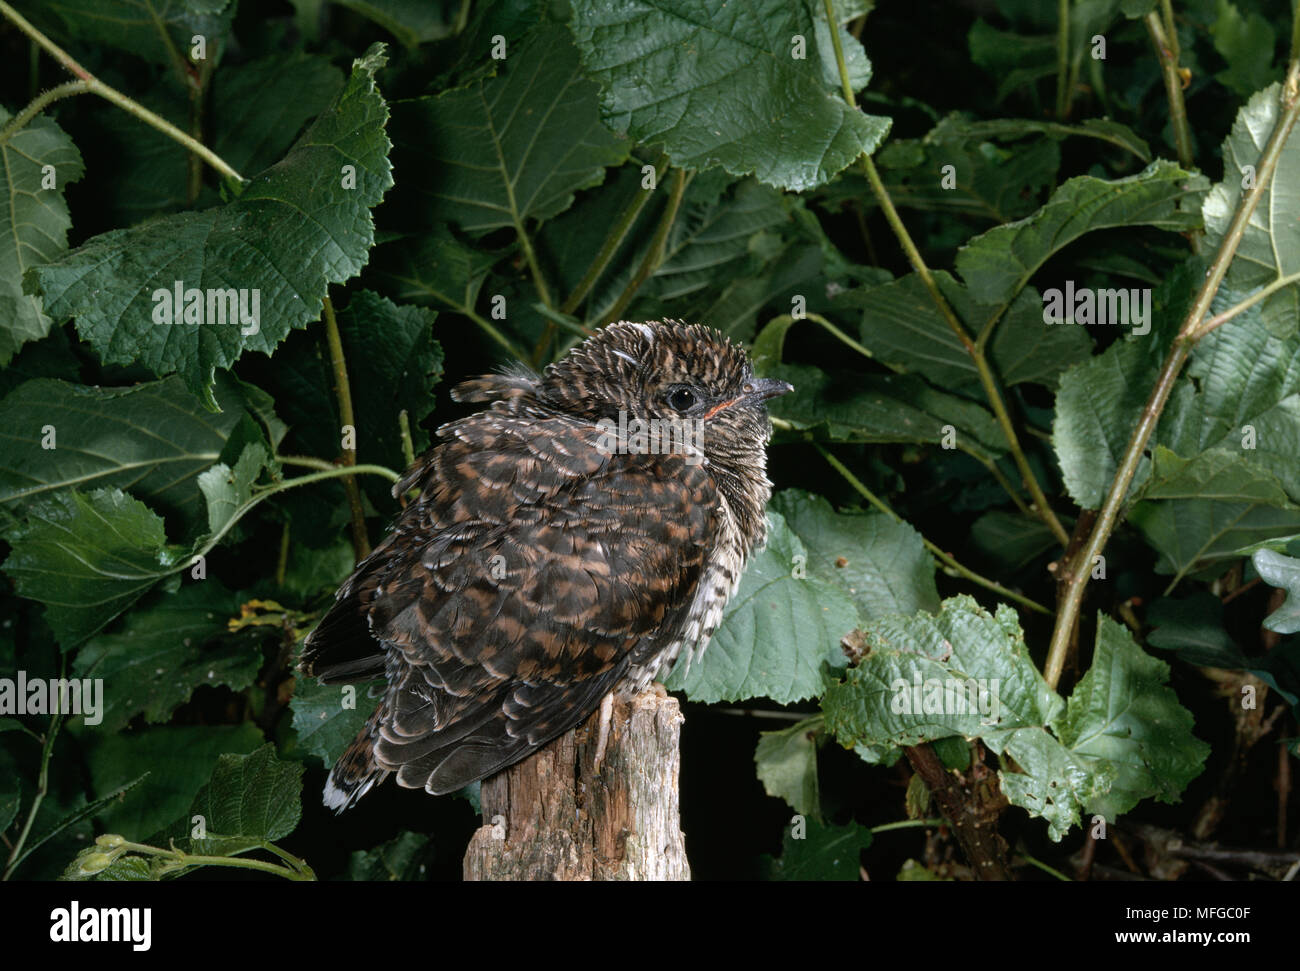 CUCKOO fledged young  Cuculus canorus  perched on fence post - Stock Image